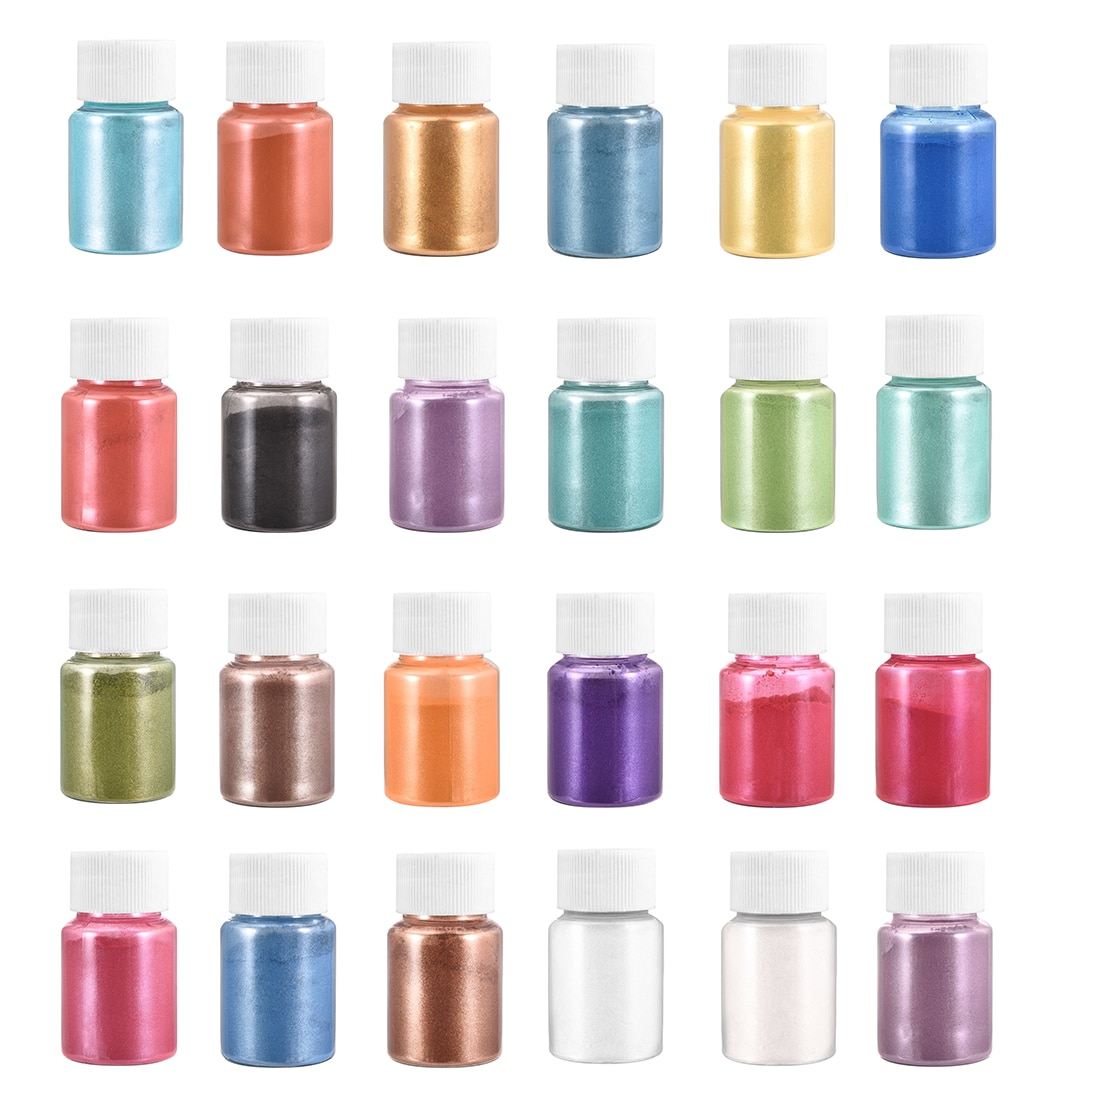 24 Color 10g Resin Pigment Filler For DIY Jewelry Making Pearl Powder UV Epoxy Nail Pigment Resin Mold Accessories Nail Art